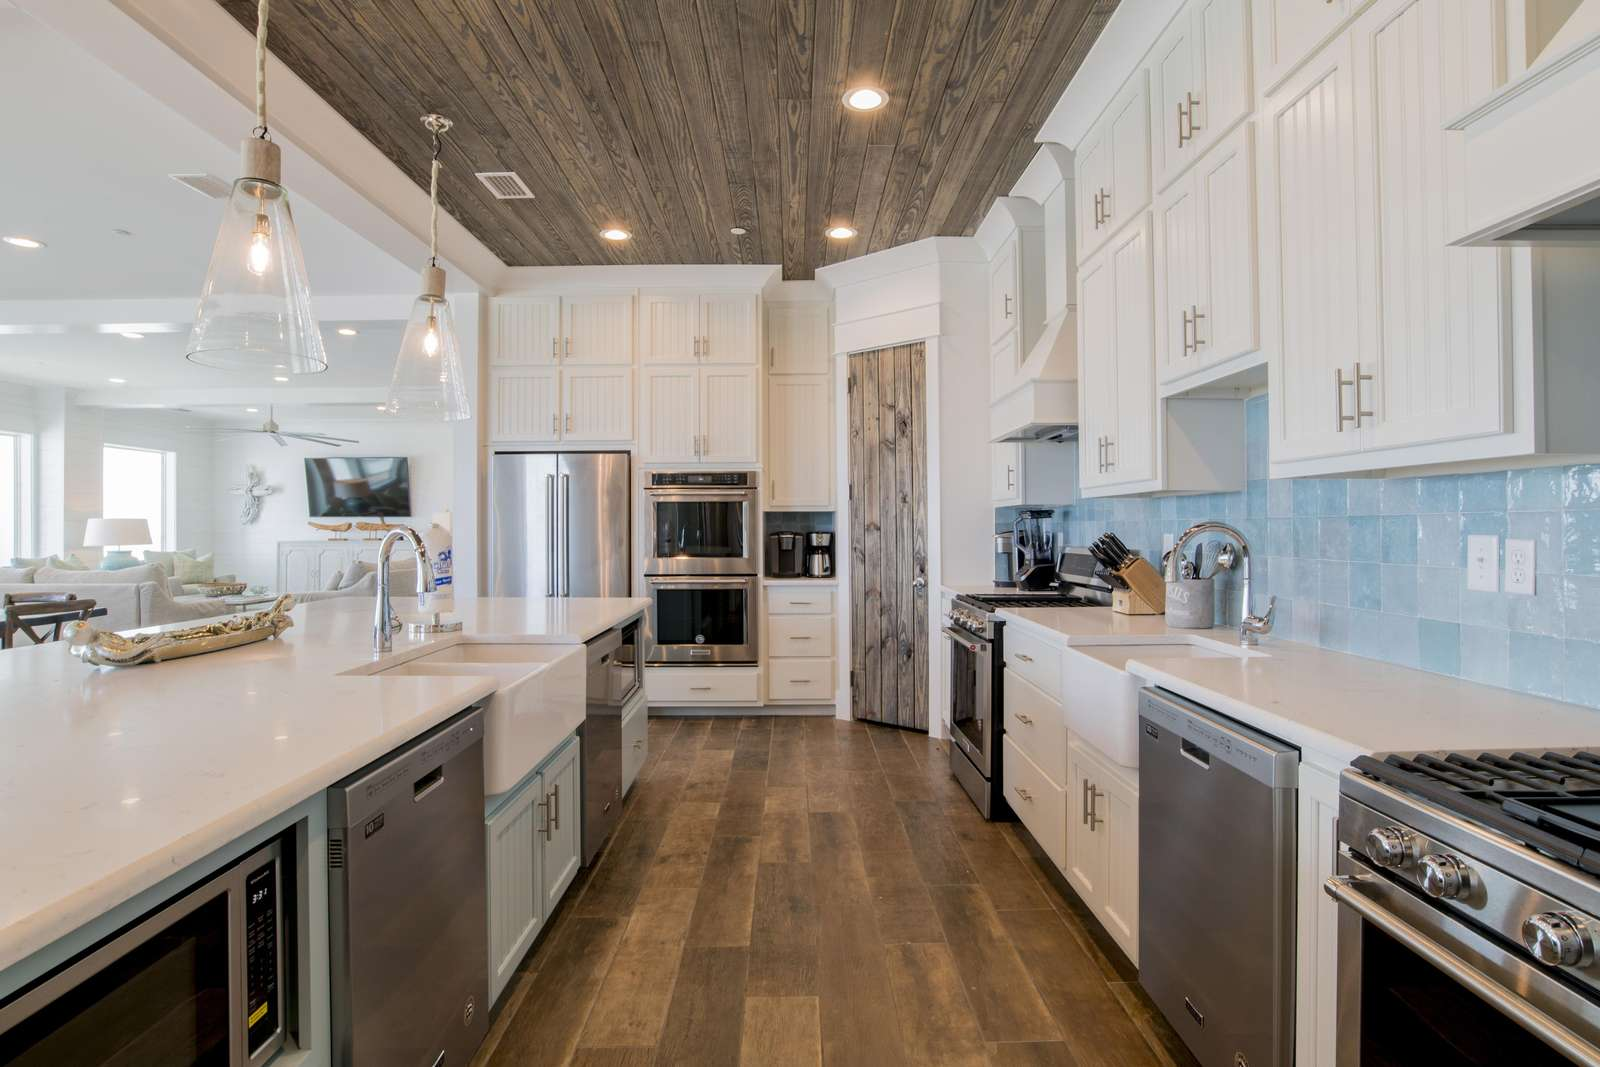 Kitchen with 3 dishwashers, 3 full size refrigerators, 2 gas range cook tops and and 4 ovens.